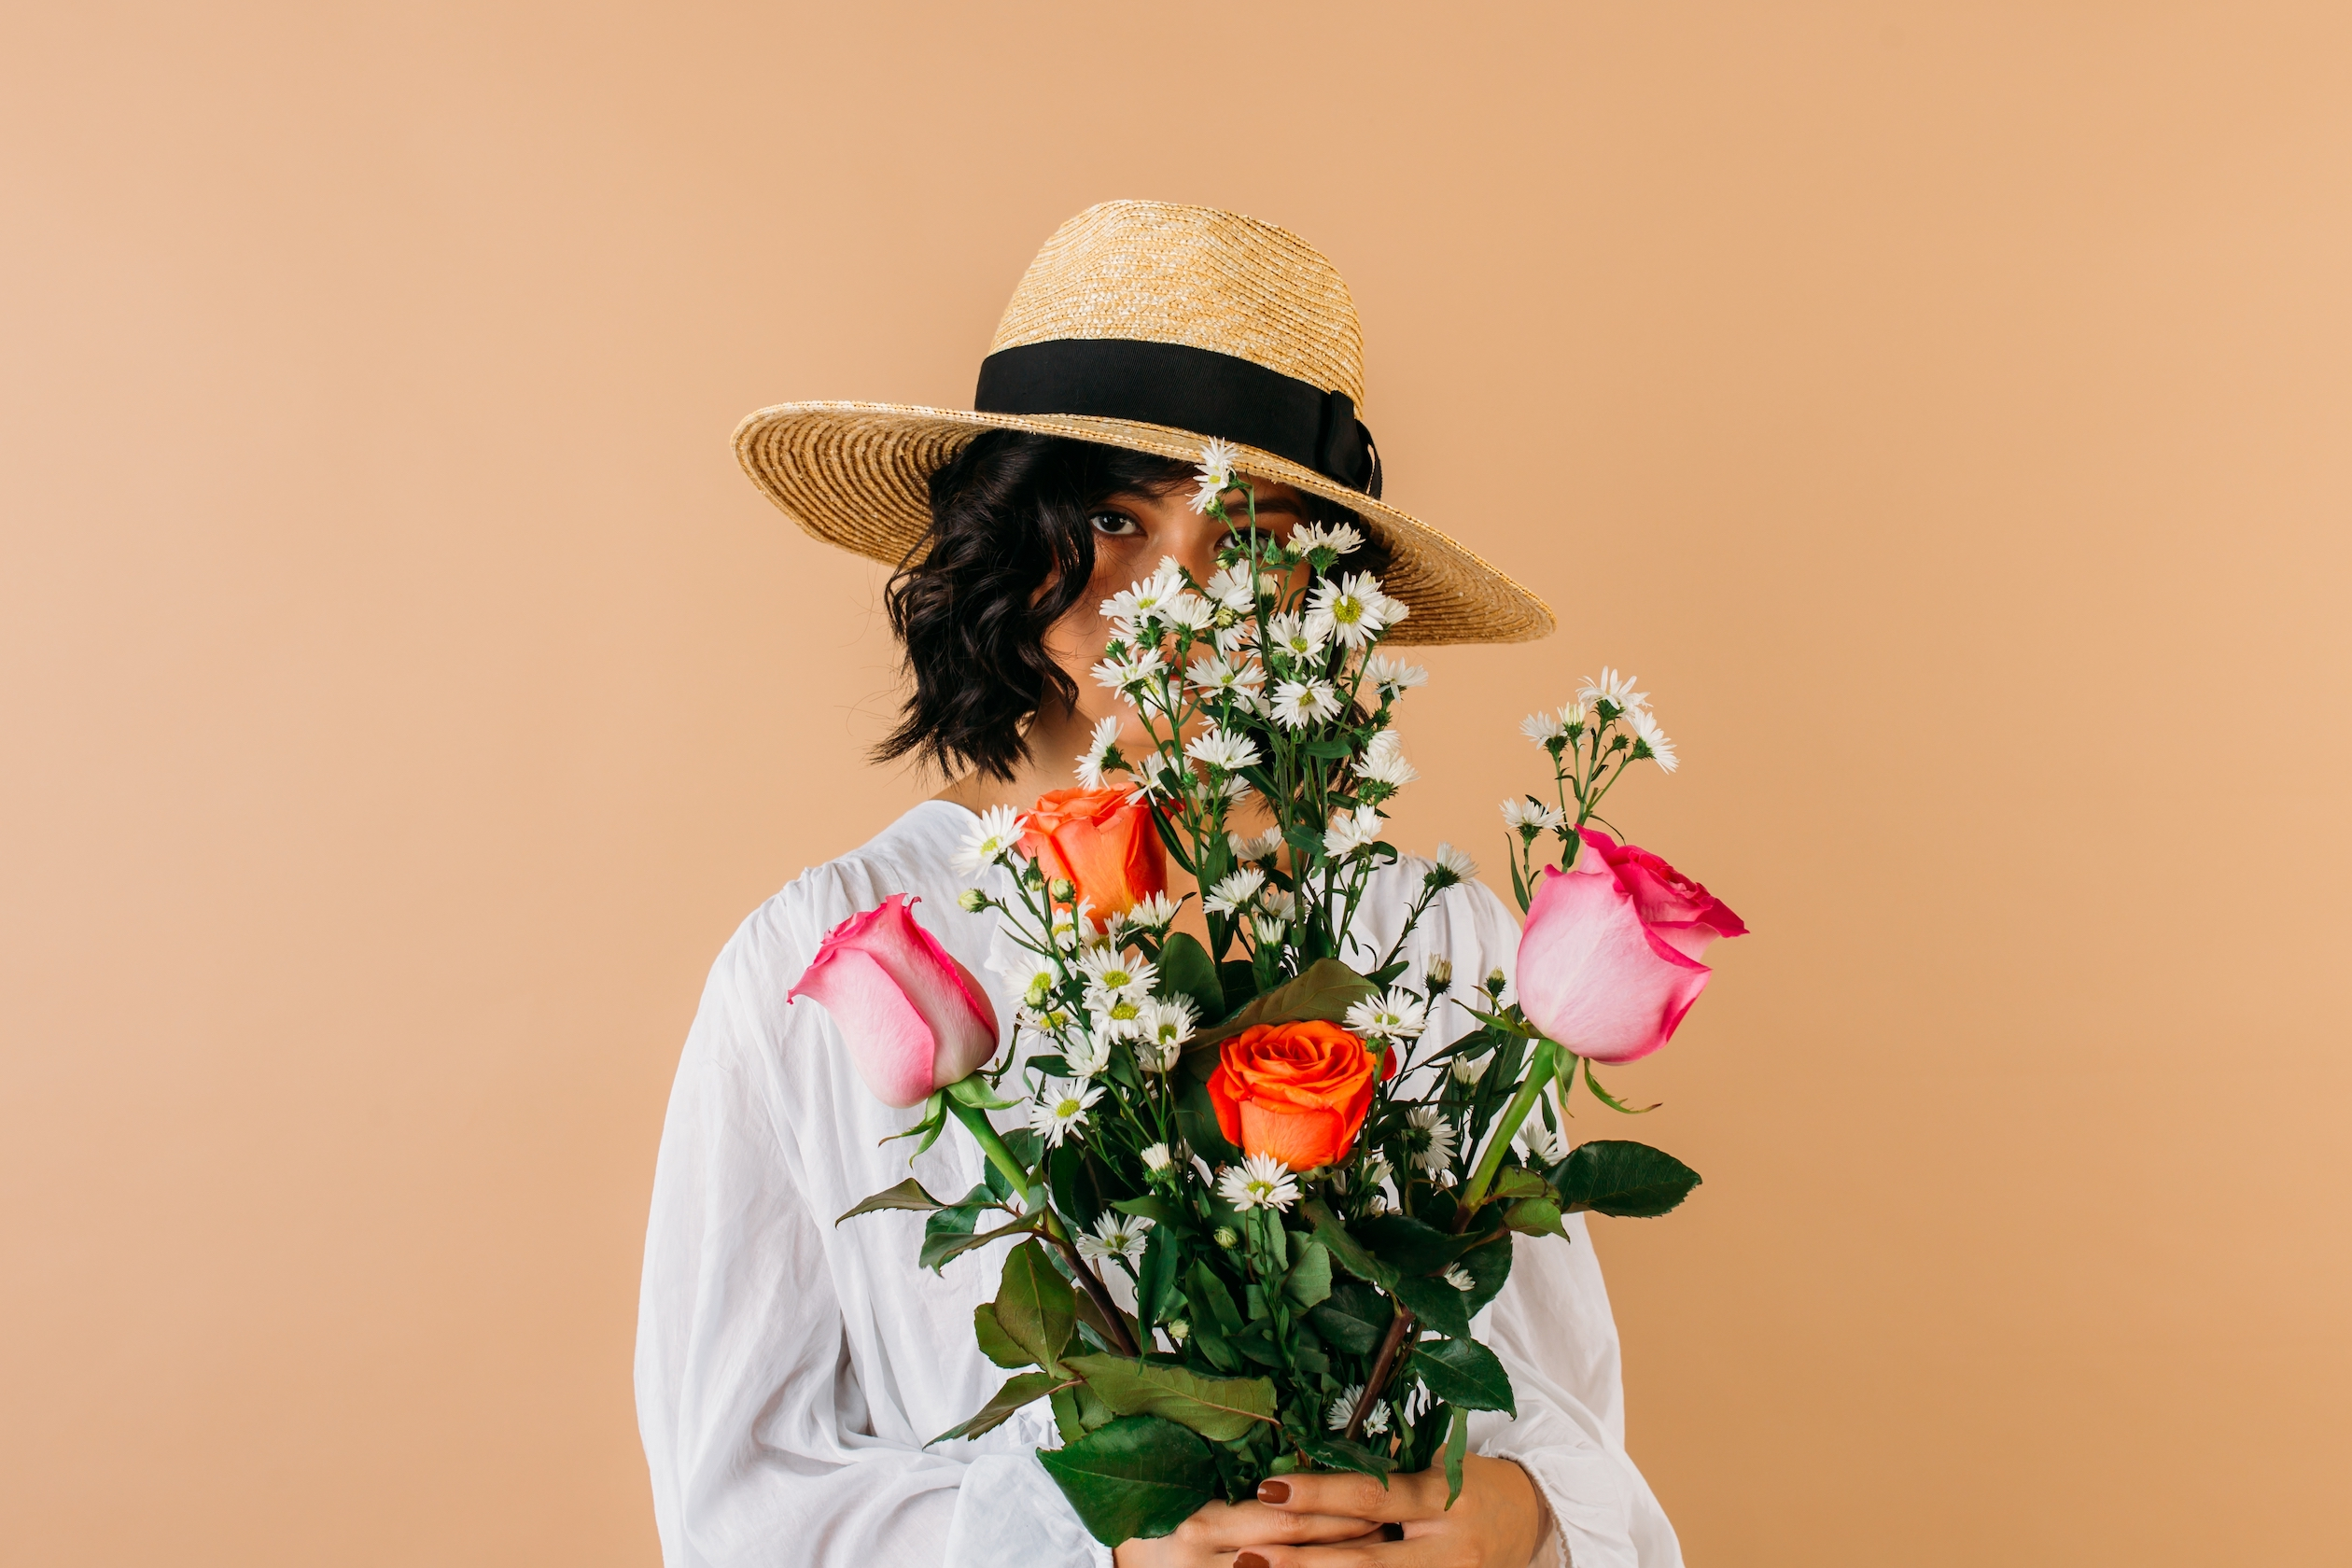 Image of a woman wearing a sunhat holding a bouquet of flowers.